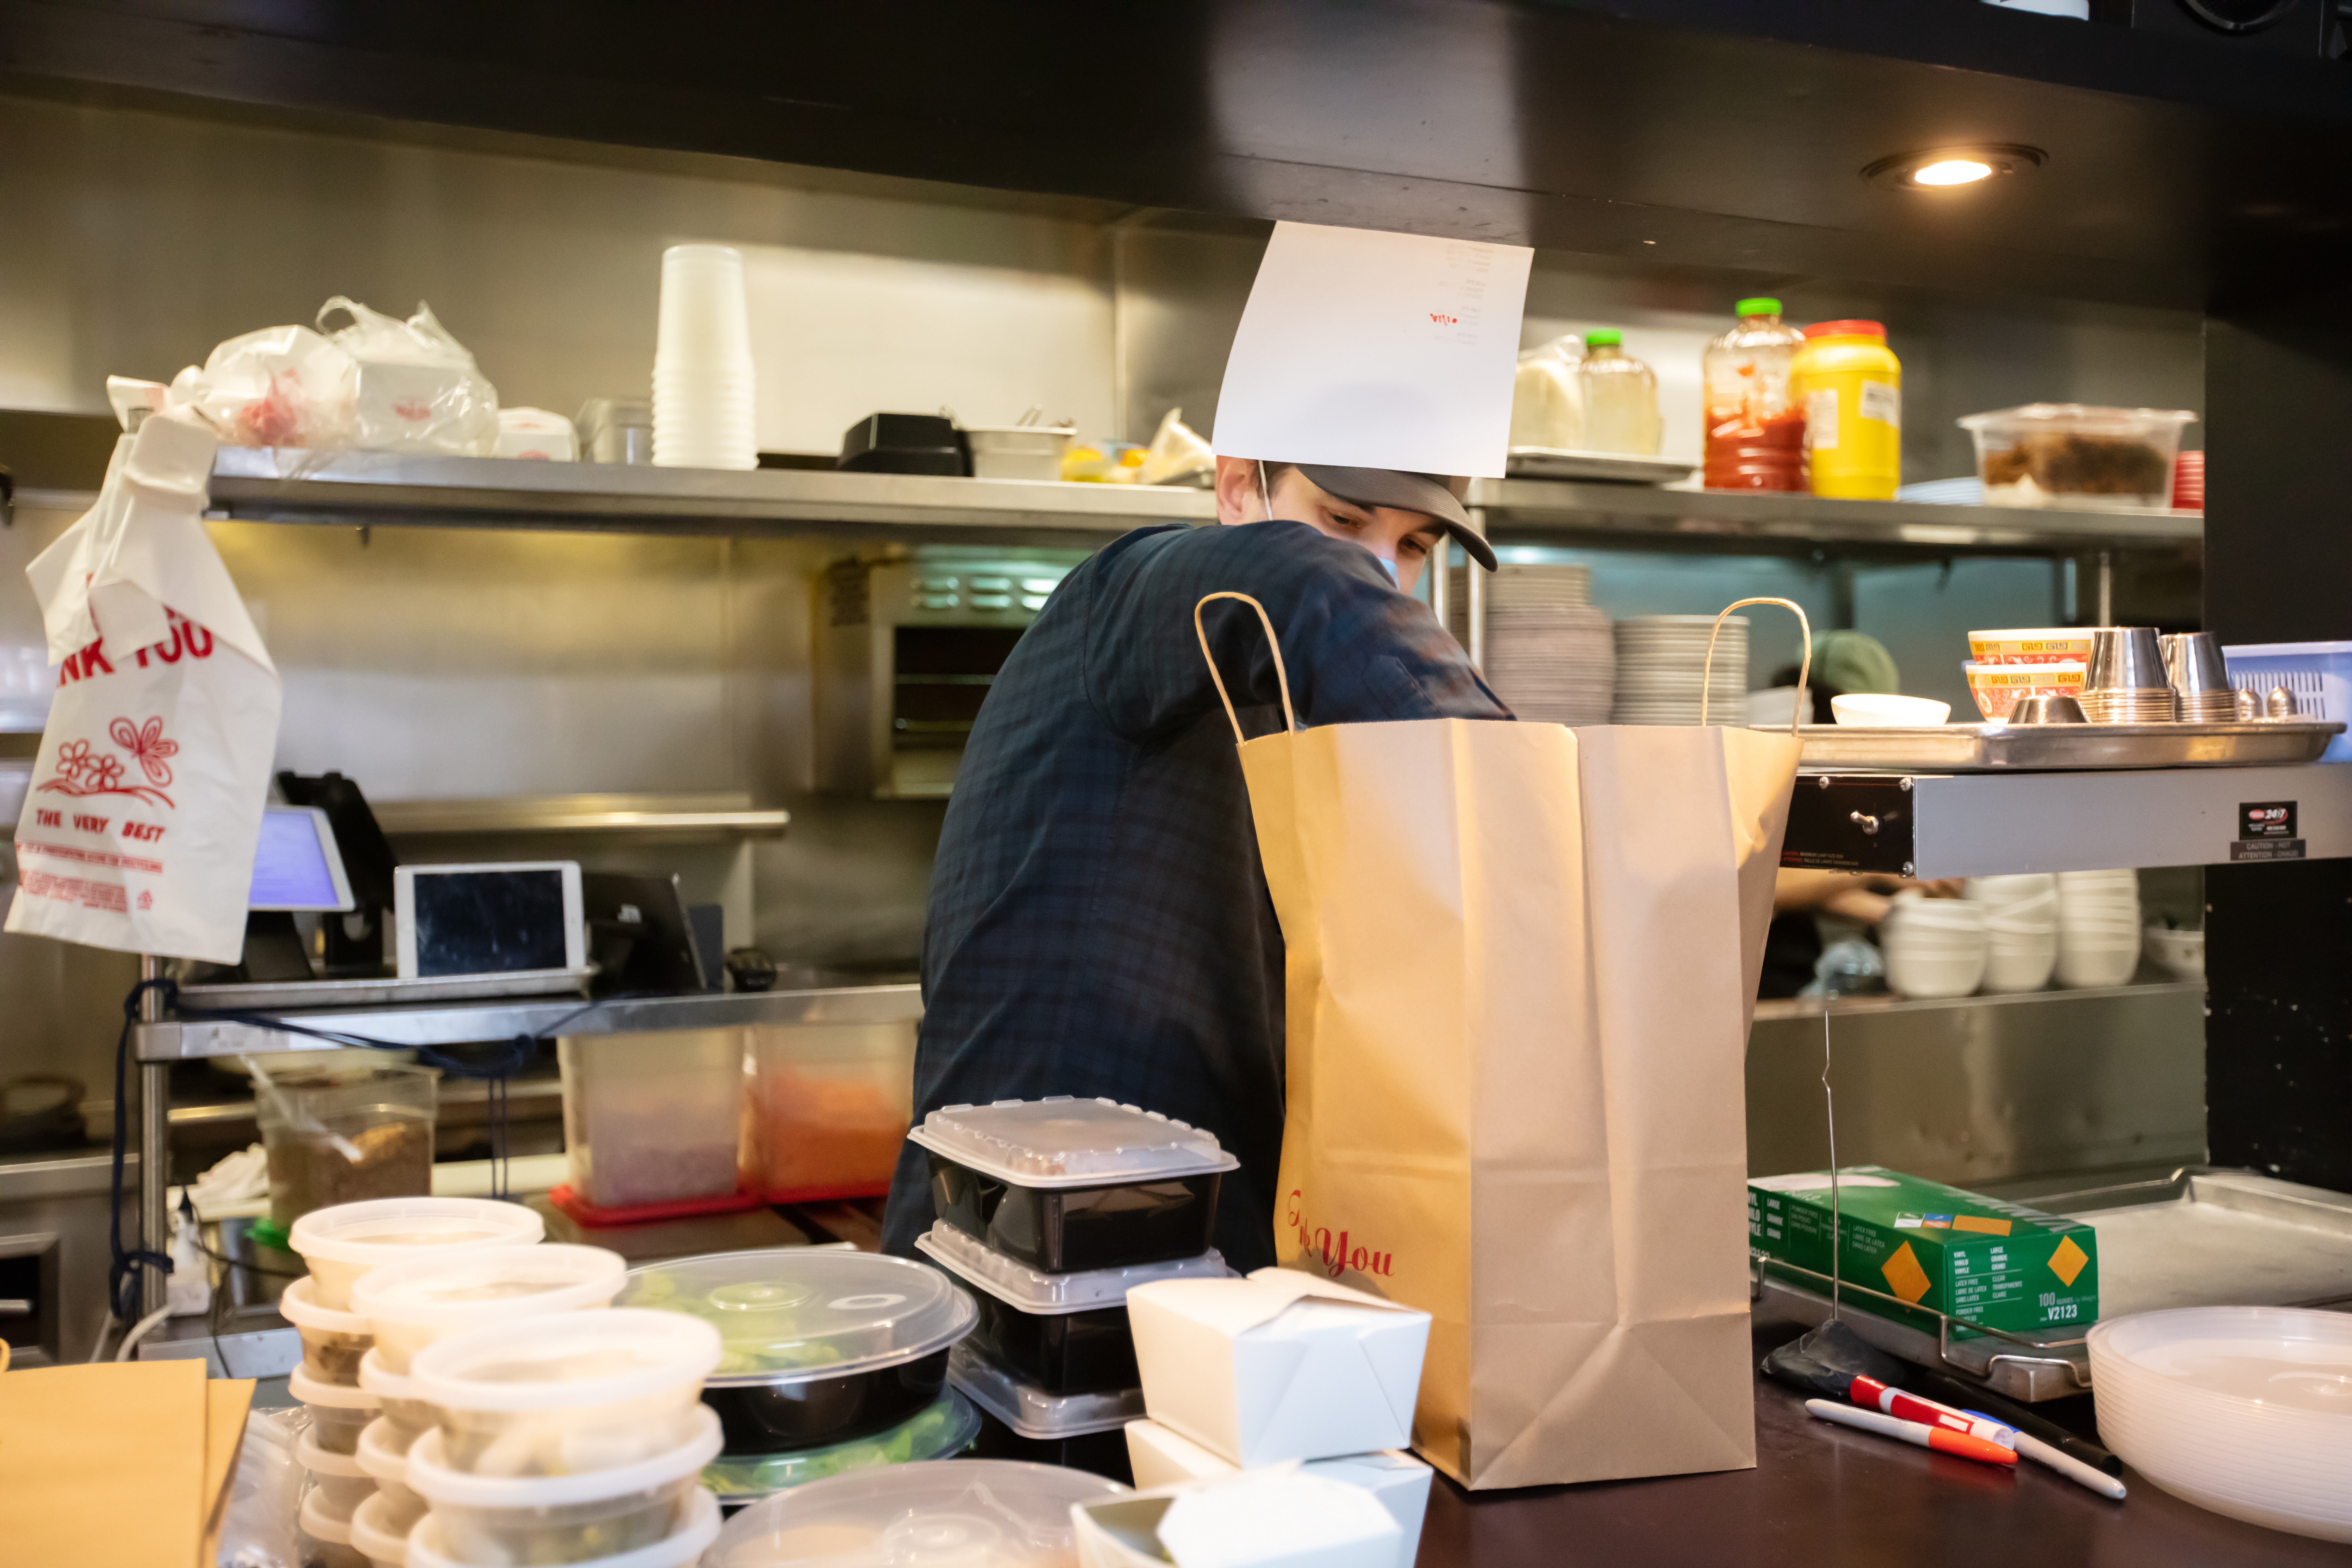 The restaurant business: How can I increase my revenue?